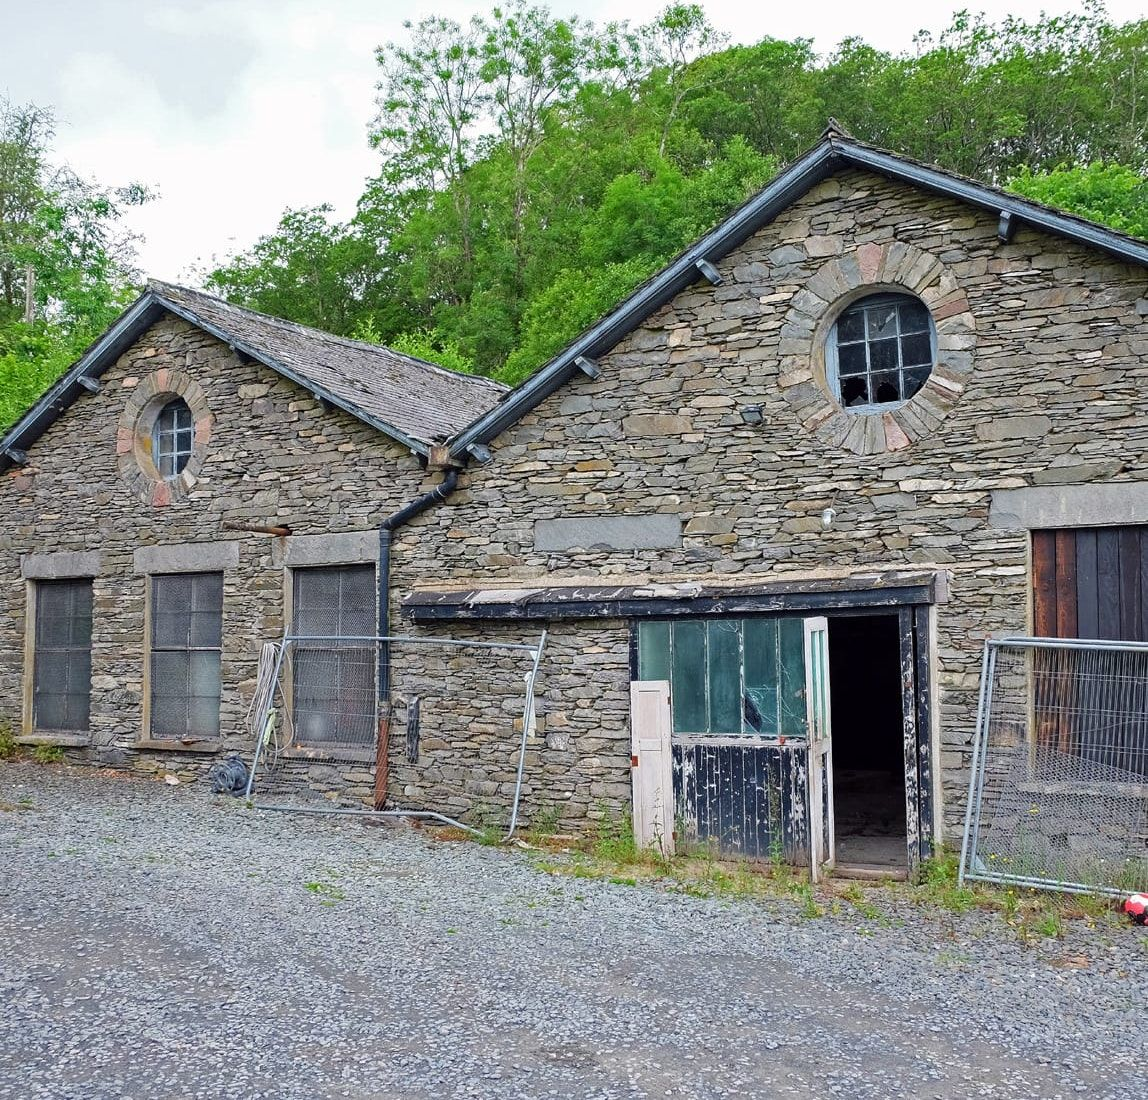 Photograph of the existing stone barns buildings which will be refurbished by From Works.